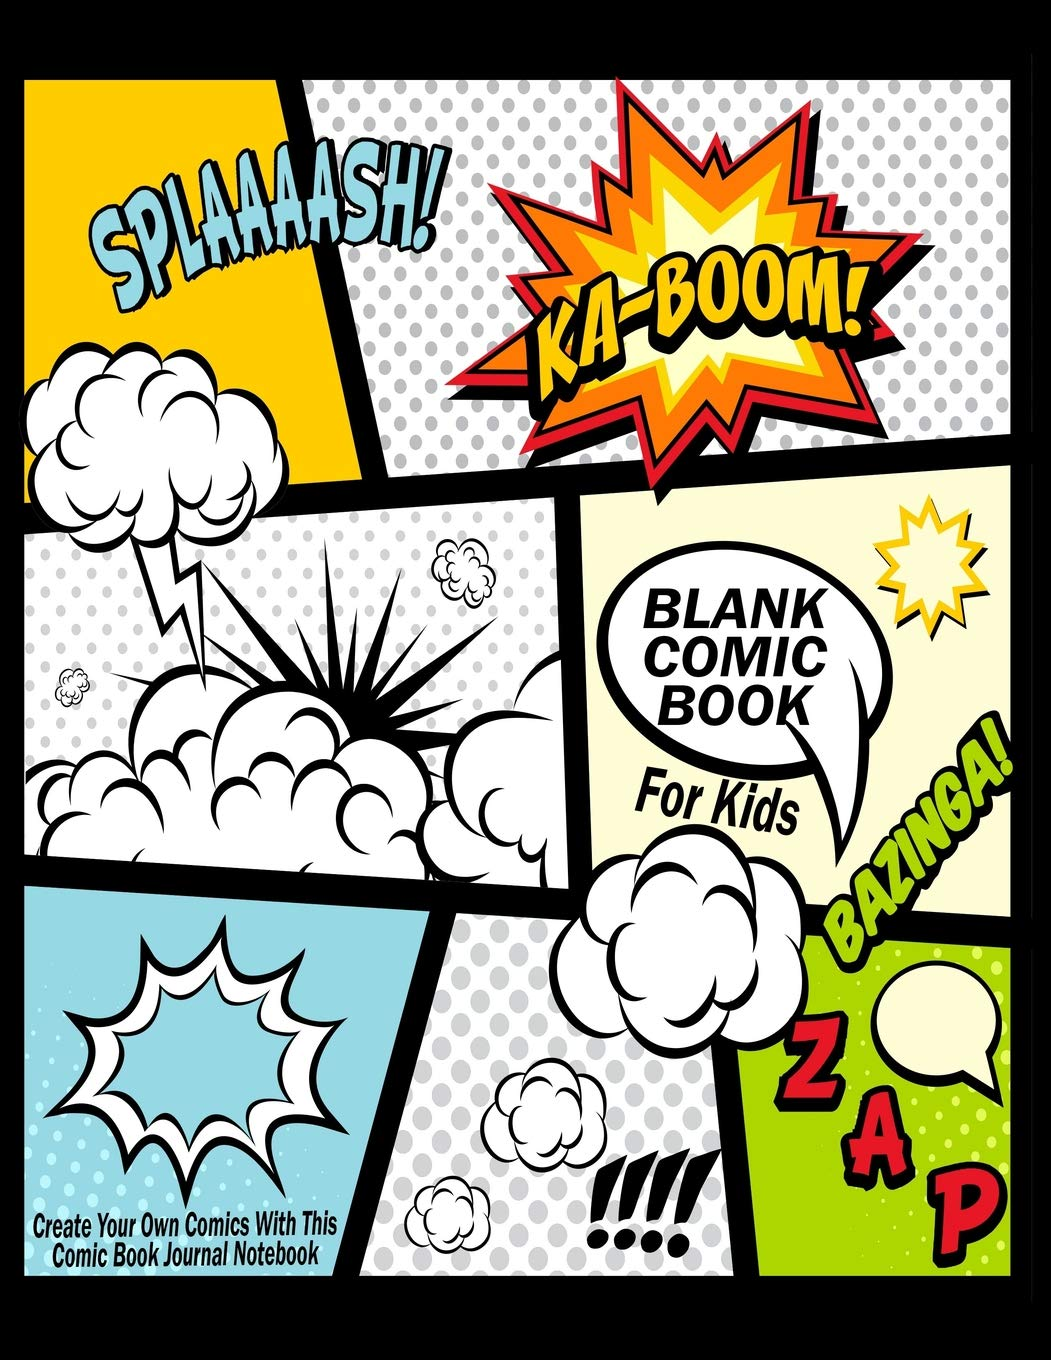 Blank Comic Book For Kids Create Your Own Comics With This Comic